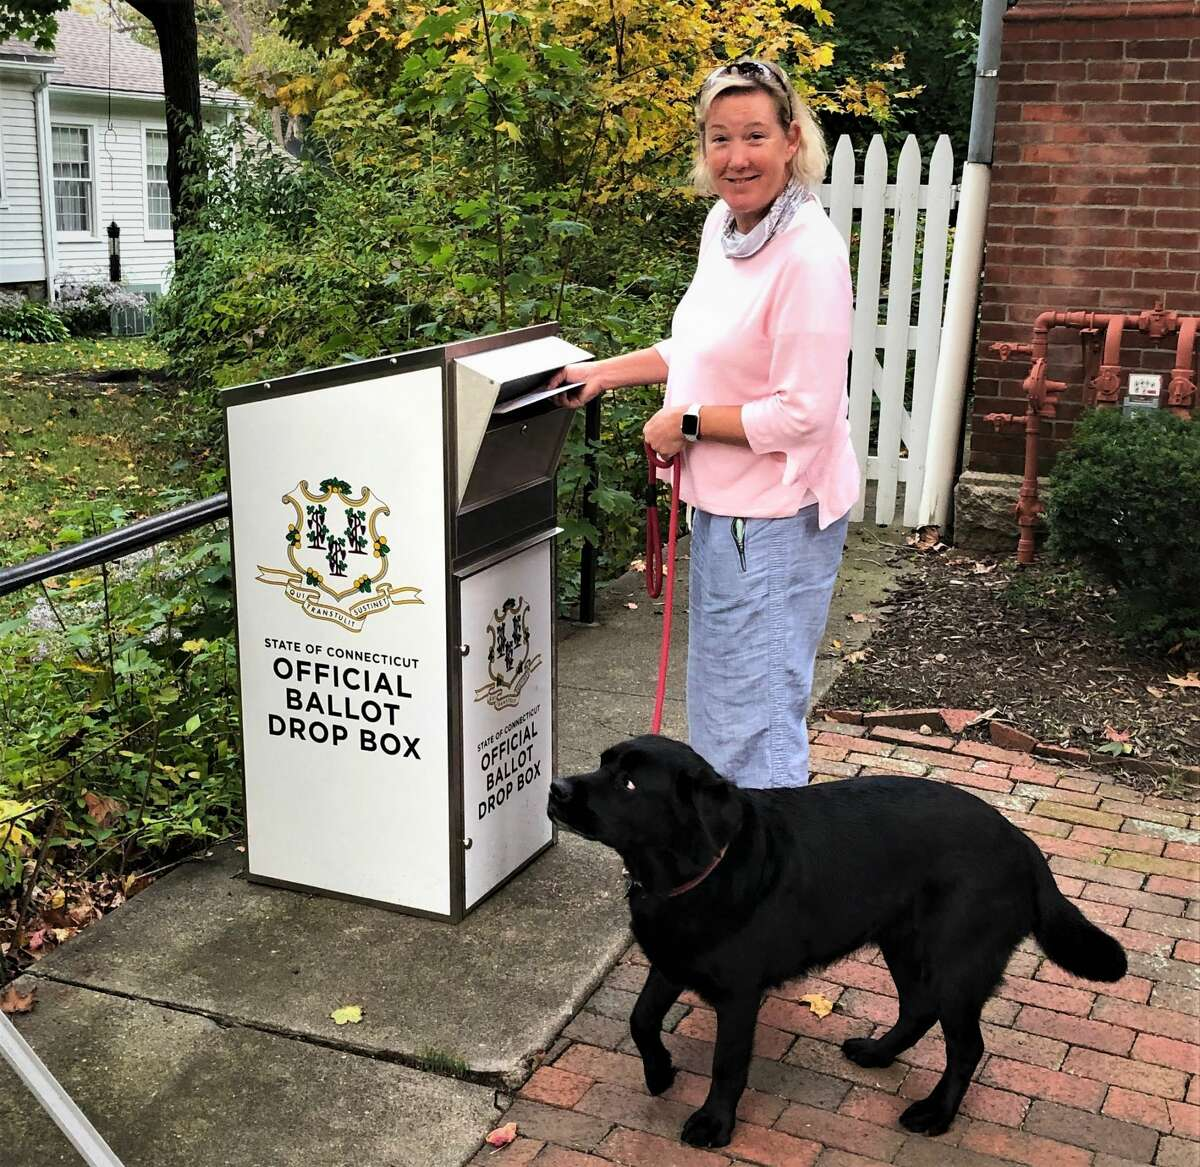 Stephanie Johnson dropped off her absentee ballot at Guilford town hall last week. • Town clerks have received 545,246 completed absentee ballots, which means 24 percent of all registered voters have already cast ballots. Most used the drop boxes, not the U.S. Postal Service - and from this point on, no one should use the mail because ballots are due by Tuesday.  • Town clerks have mailed out a total of 692,110 absentee ballots, representing just over 30 percent of all registered voters. The state has 2.3 million registered voters and more than 1.8 million are expected to cast ballots in person or by absentee.